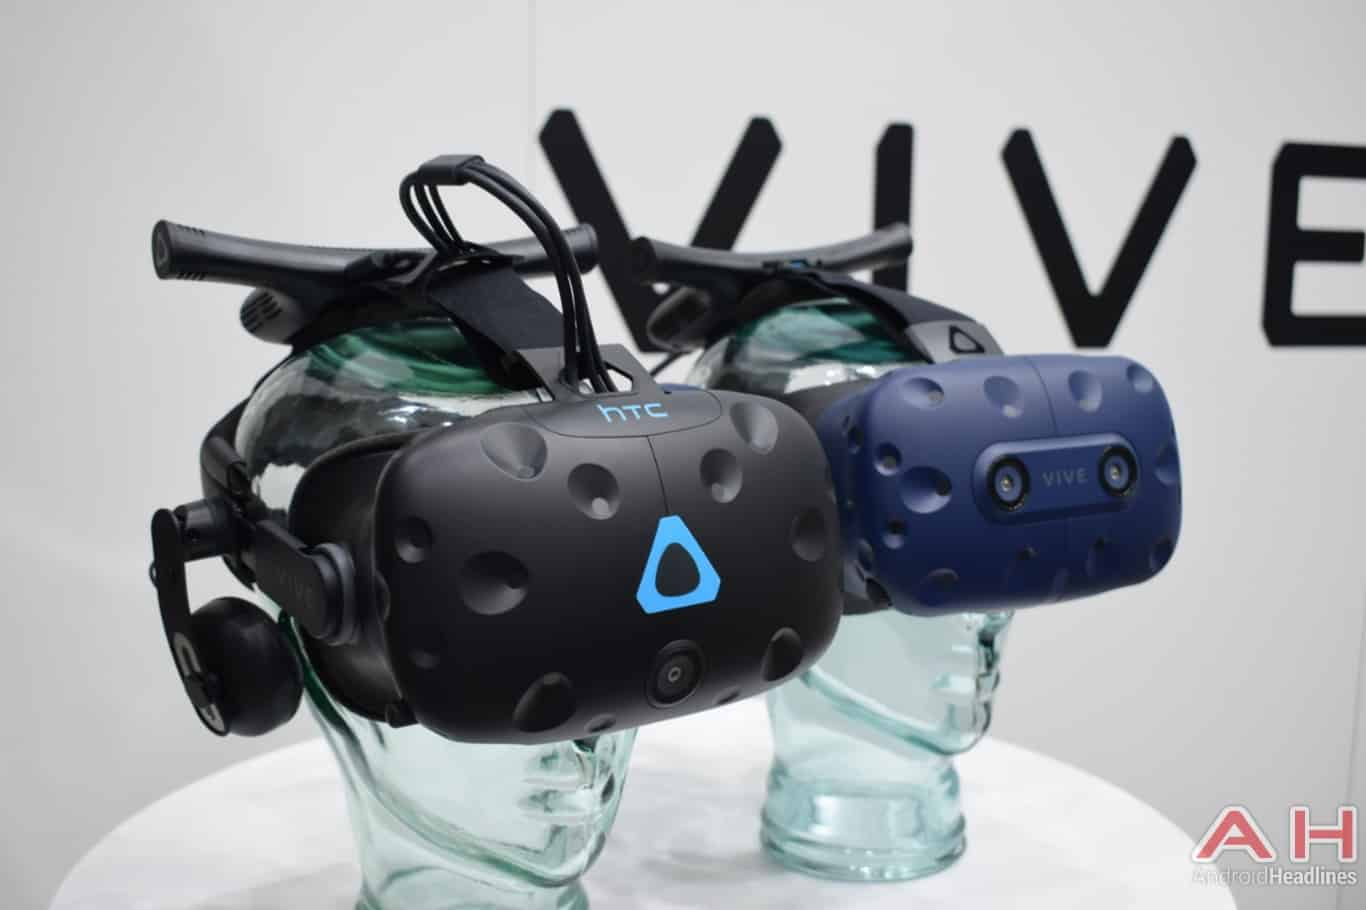 AH HTC Vive Pro MWC 2018 hands on 2